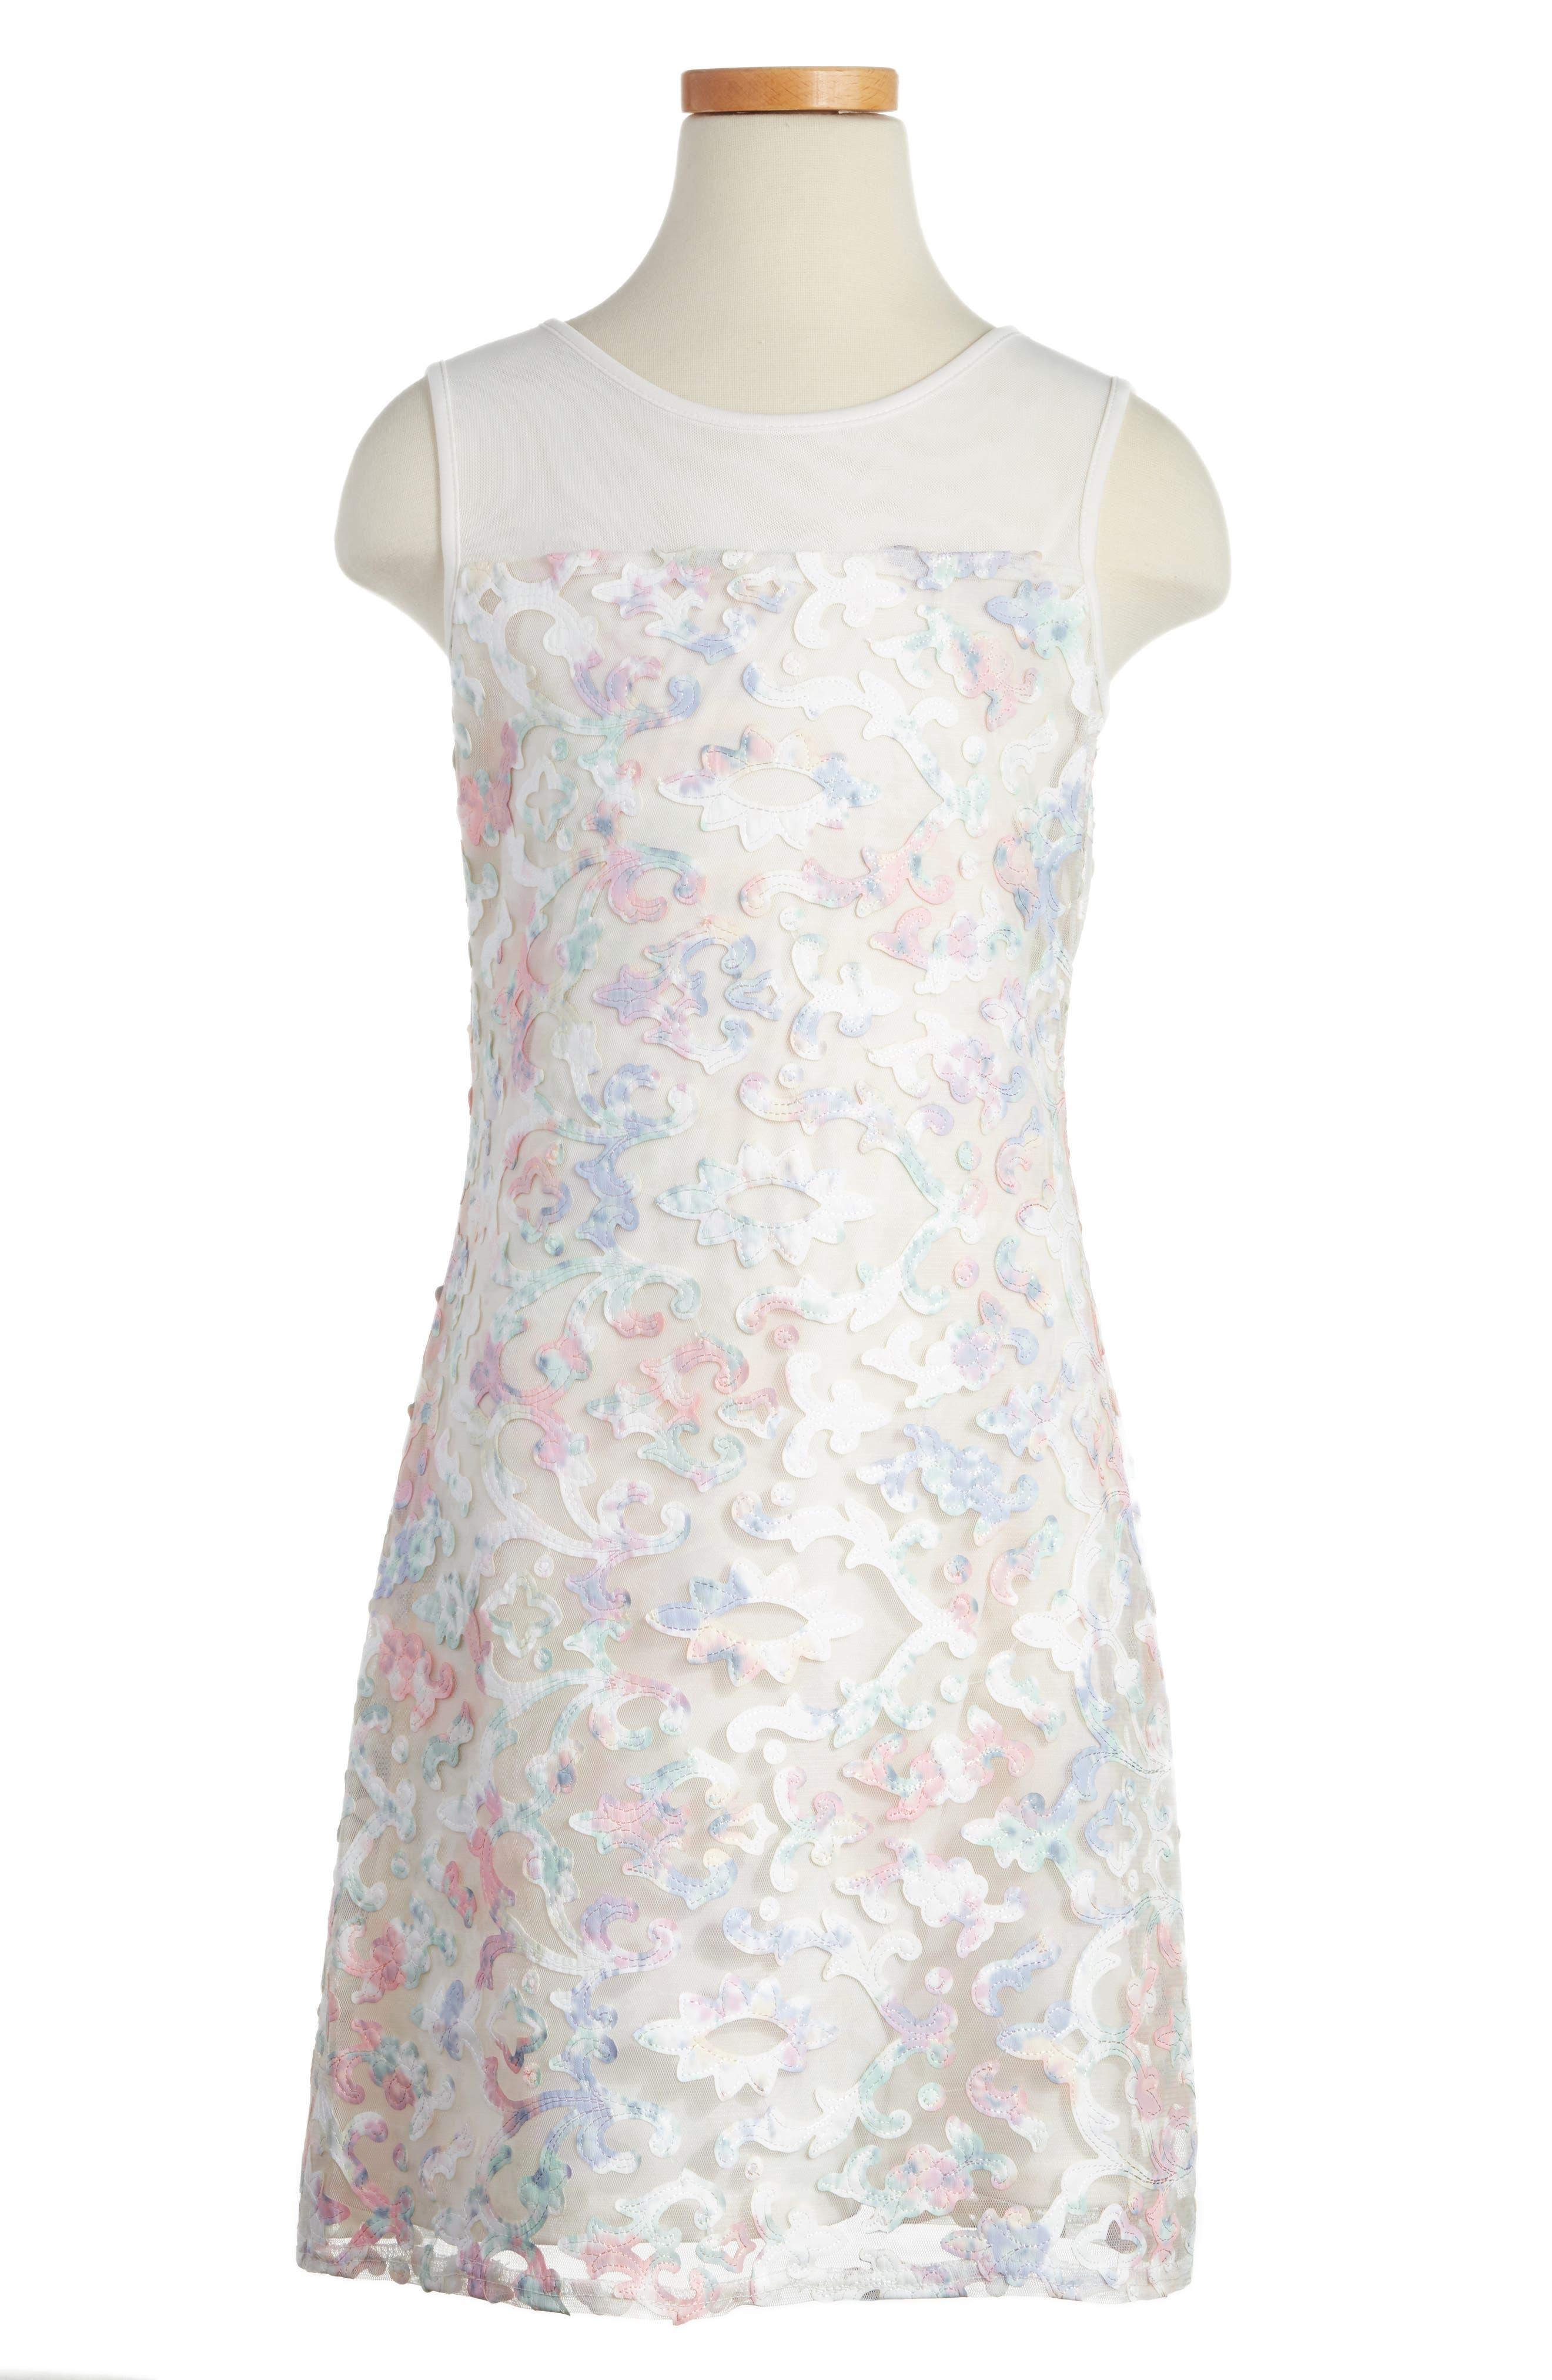 BLUSH by Us Angels Floral Illusion Dress (Big Girls)